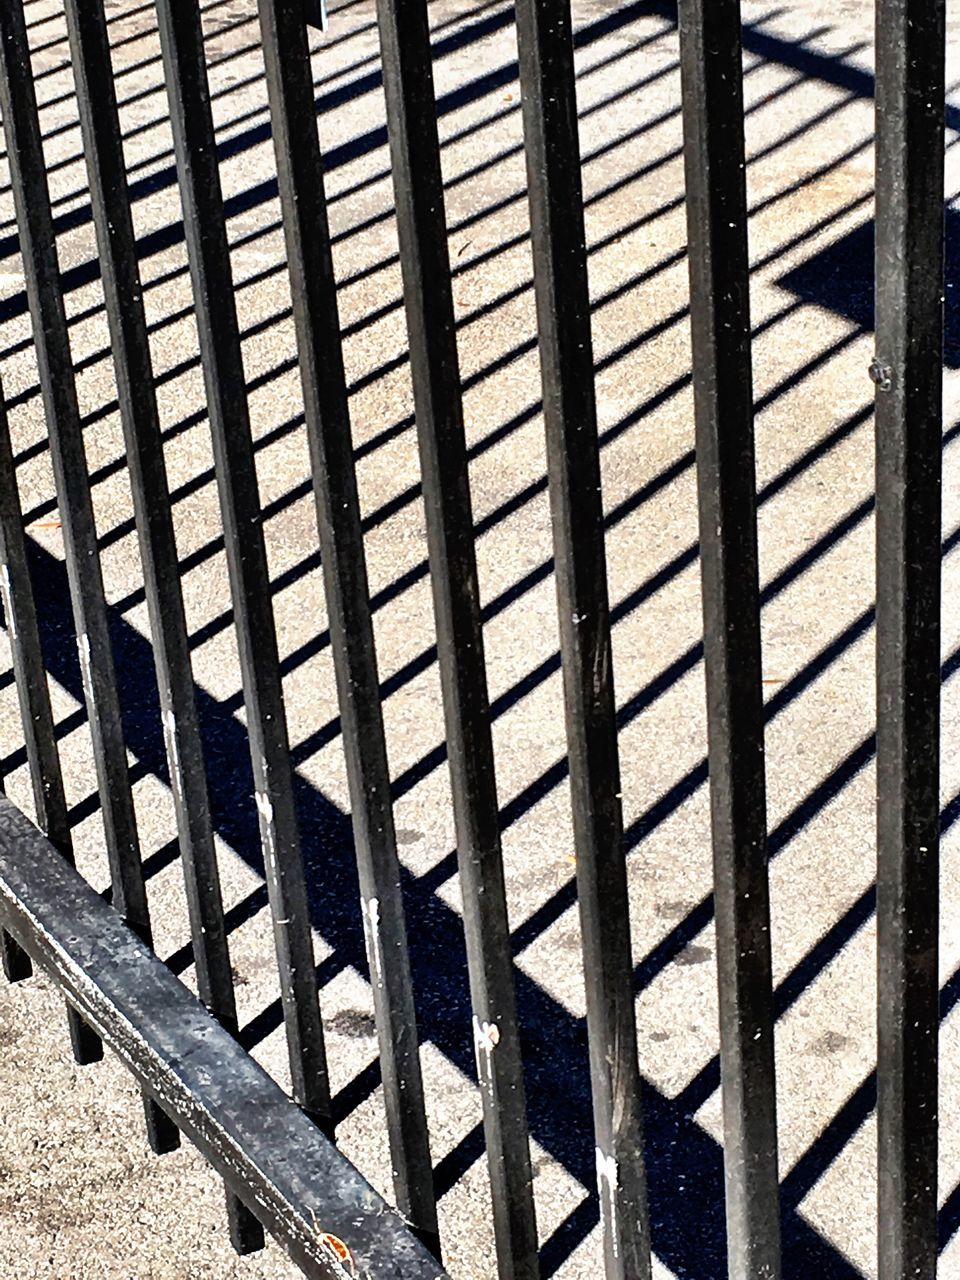 metal, pattern, day, high angle view, no people, outdoors, sunlight, shadow, backgrounds, close-up